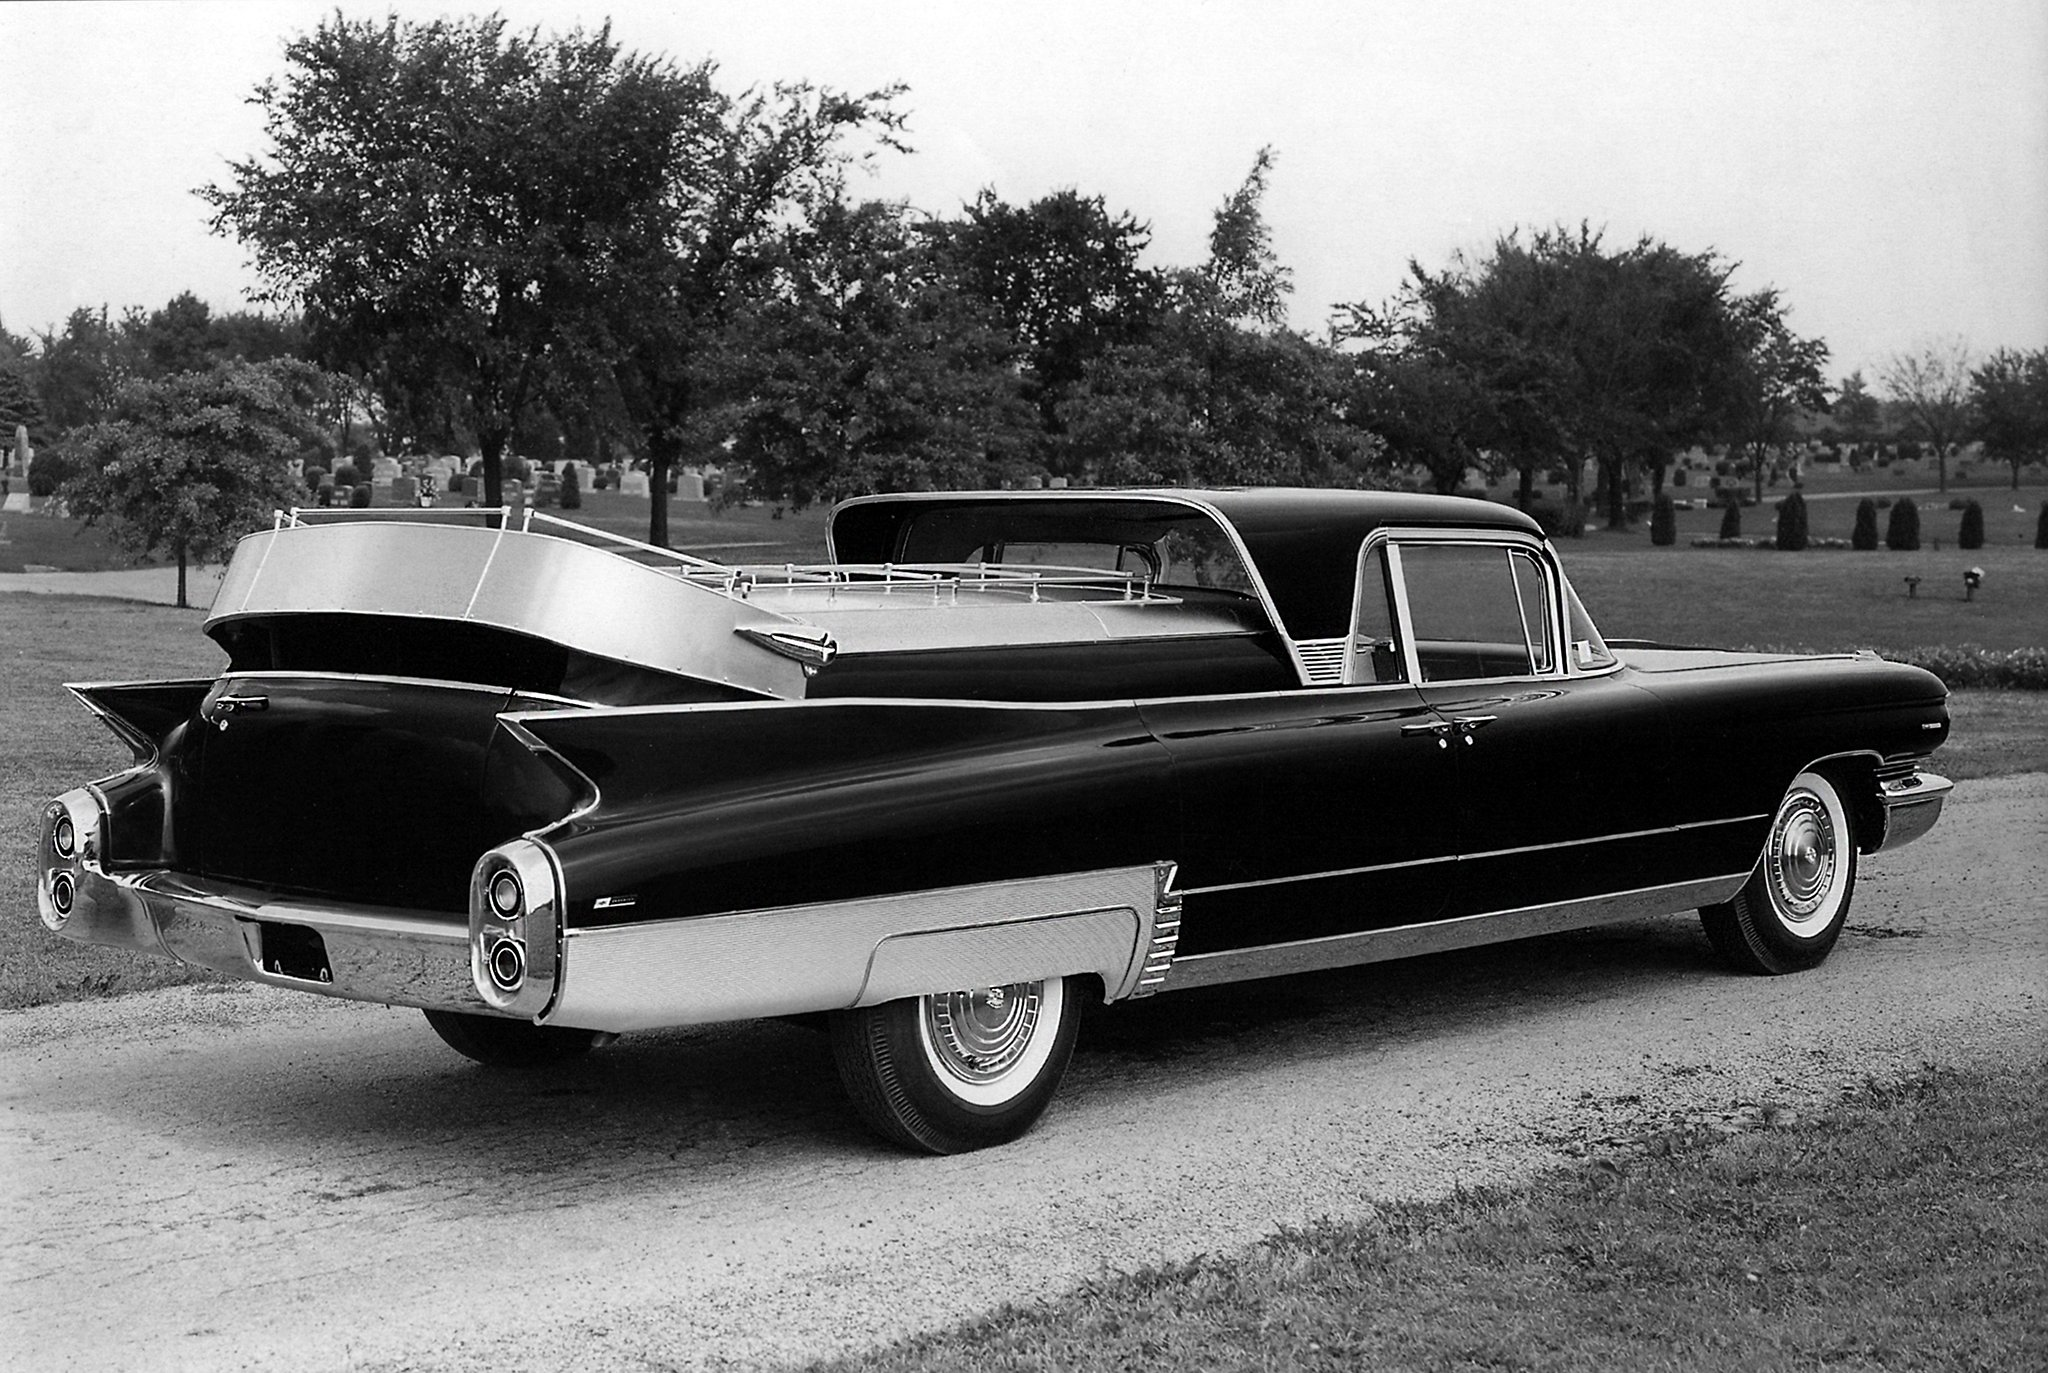 1960 superior cadillac flower car 60 68 6890 funeral luxury 1960 superior cadillac flower car 60 68 6890 funeral luxury classic wallpaper 2048x1373 525258 wallpaperup izmirmasajfo